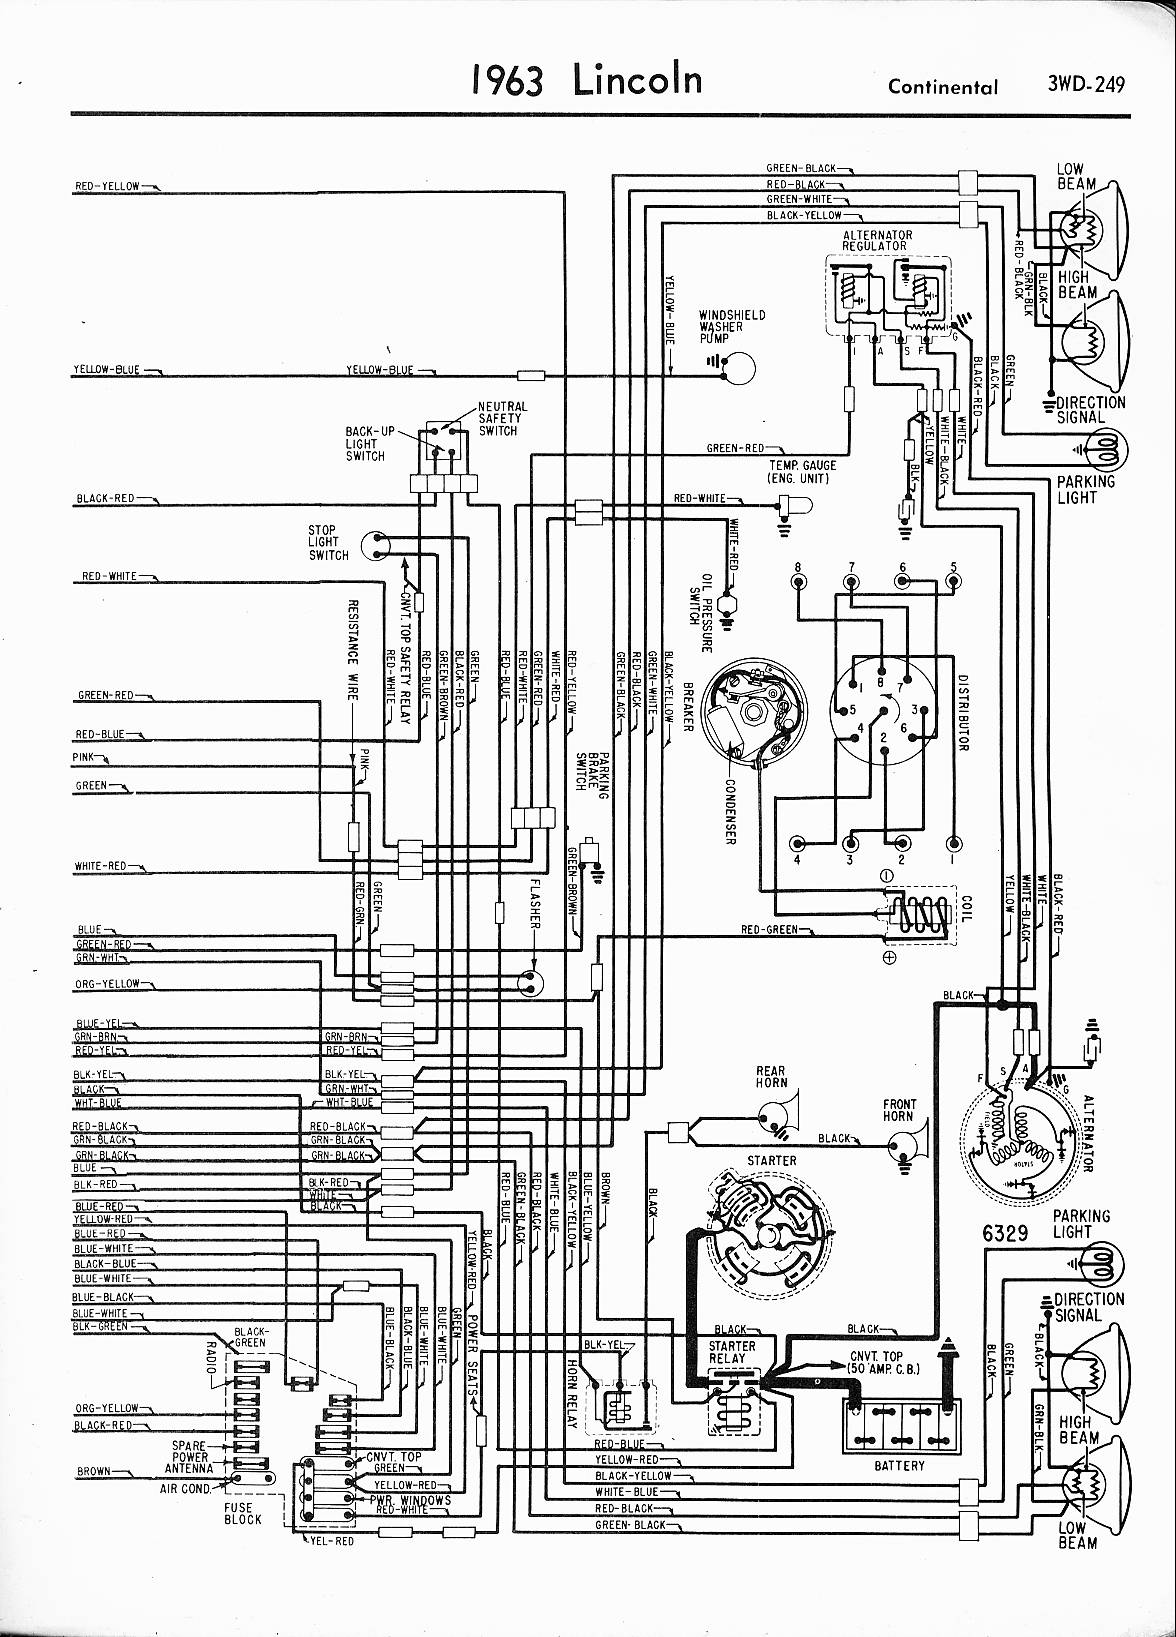 67 Lincoln Continental Wiring Diagram - Wiring Diagrams DataUssel